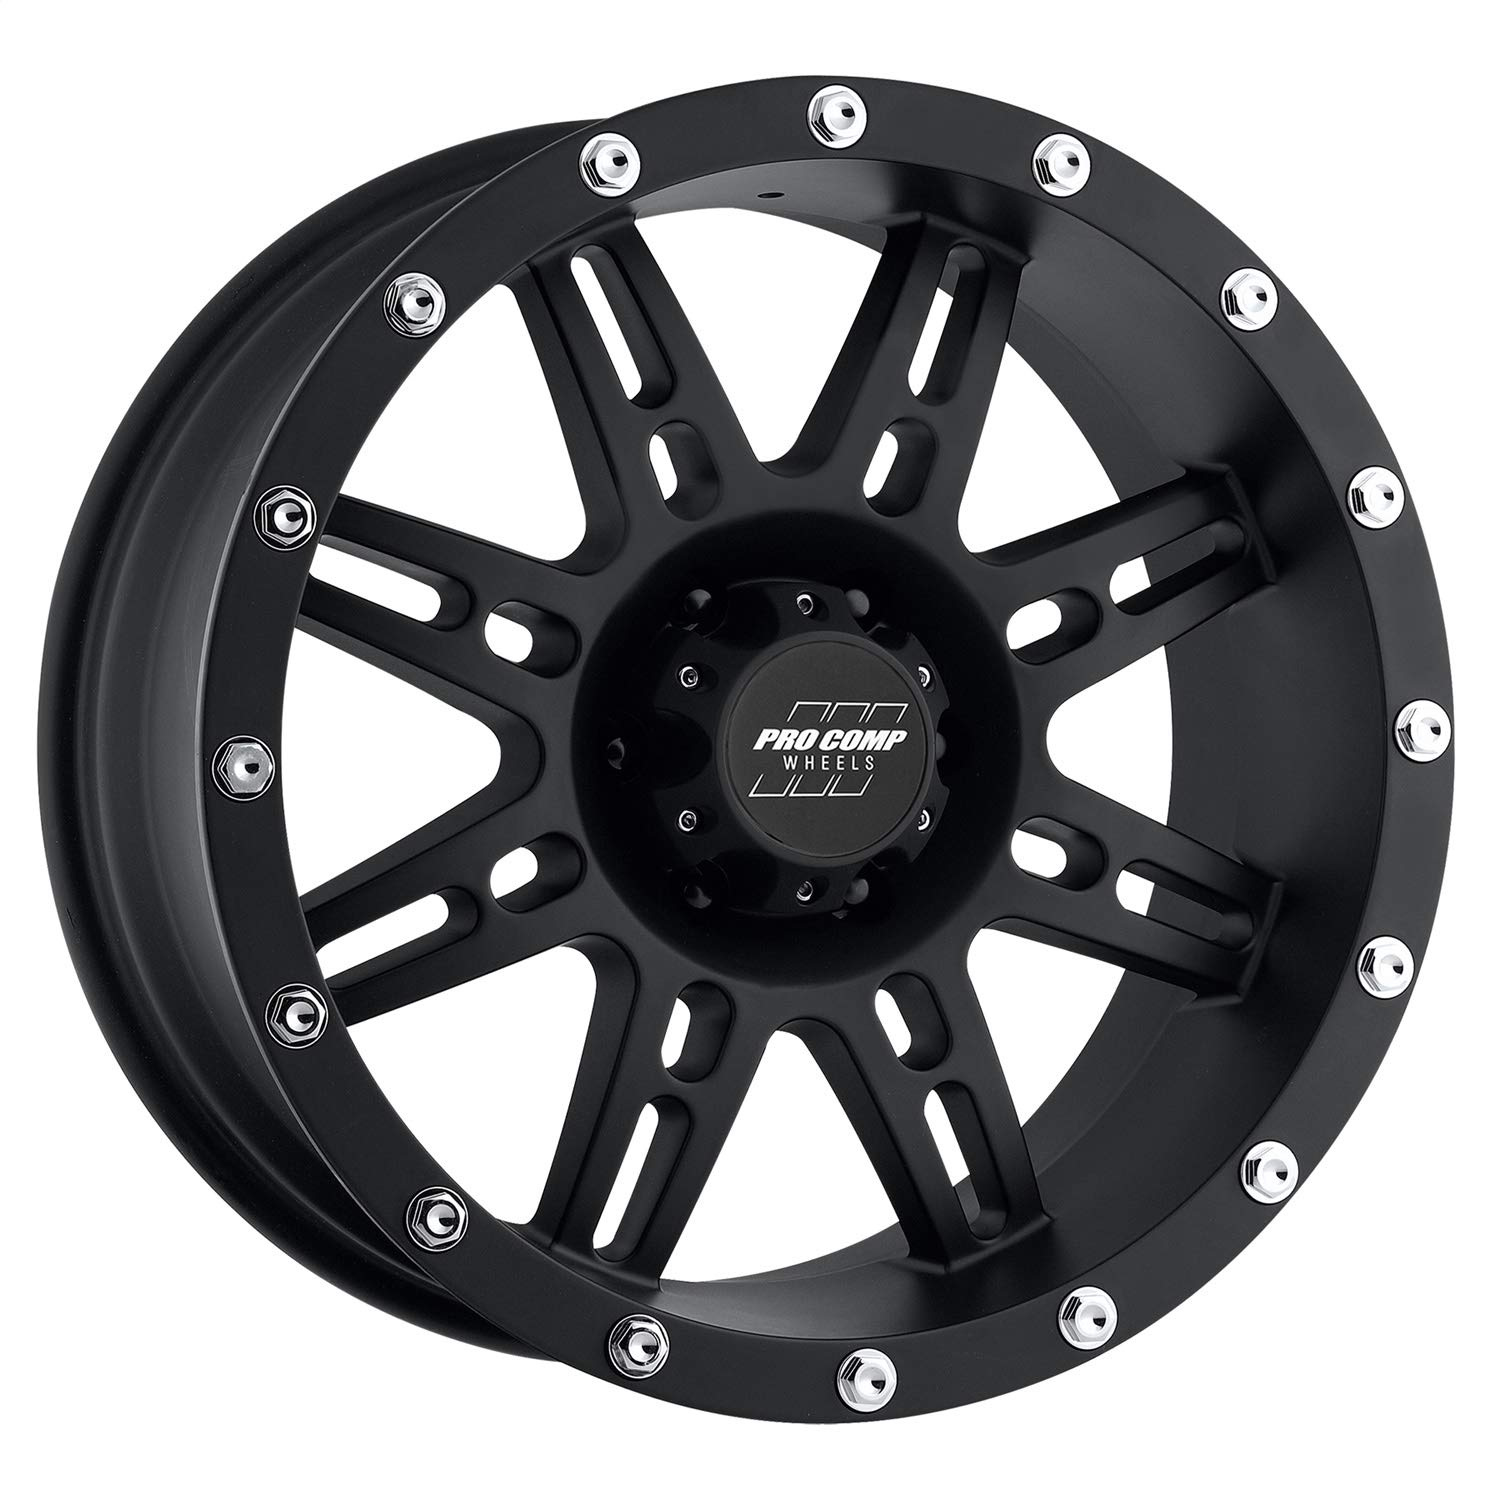 15x8//6x5.5-19mm Pro Comp Alloys Series 69 Wheel with Flat Black Finish